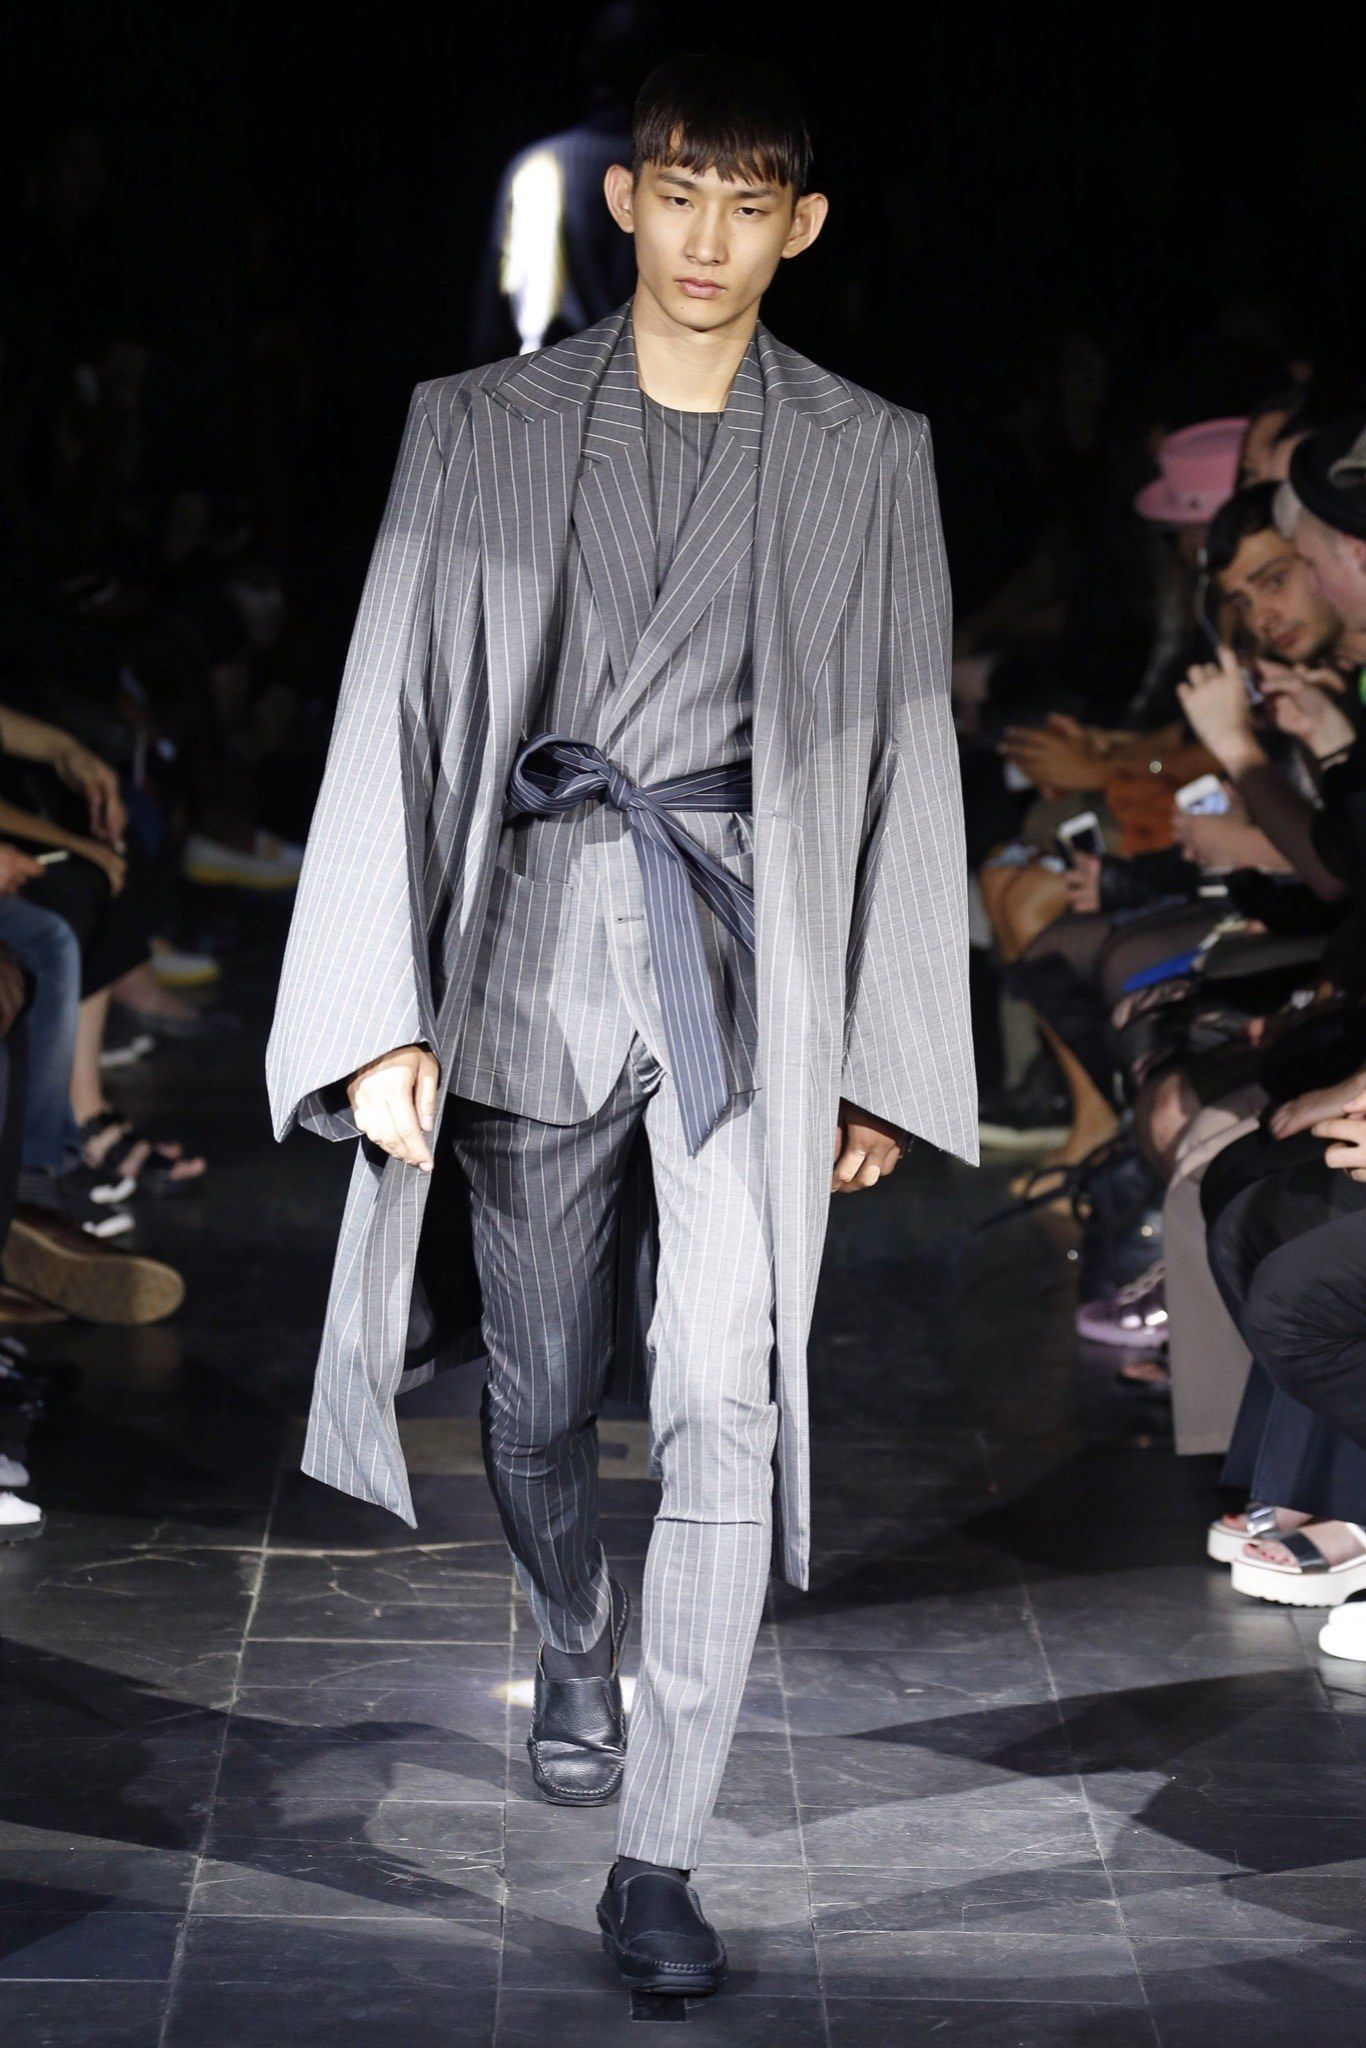 Belted with a tie - Kimono styling - Y/Project Spring 2016 Menswear Fashion Show